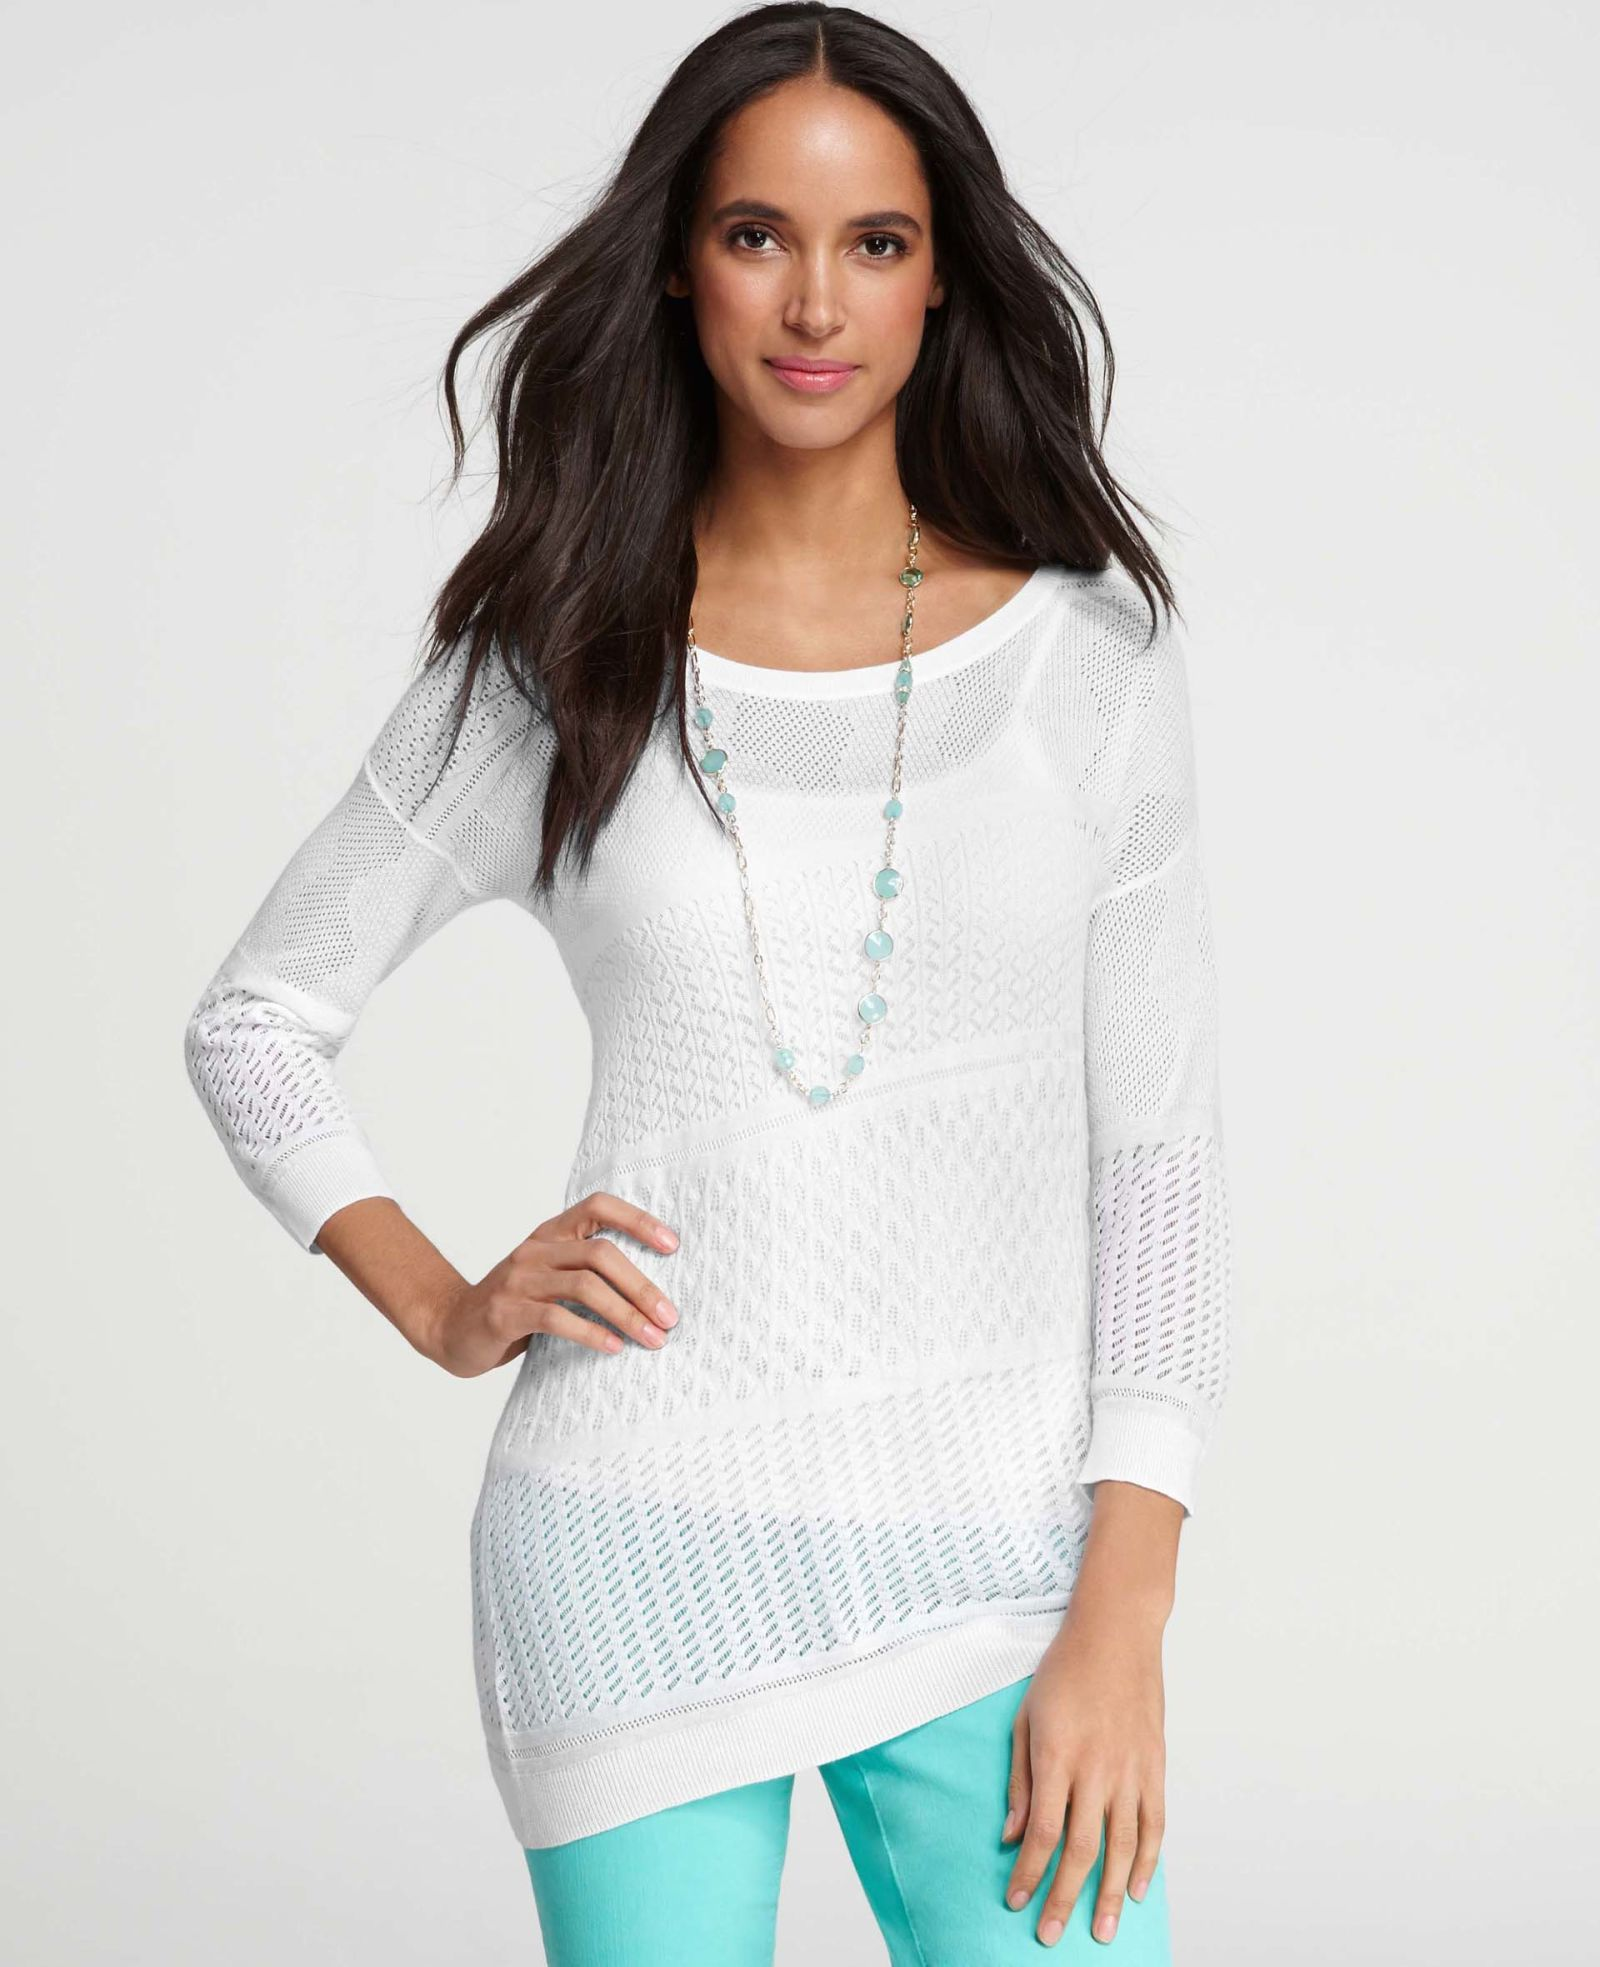 Lightweight Sweaters - Spring Sweaters